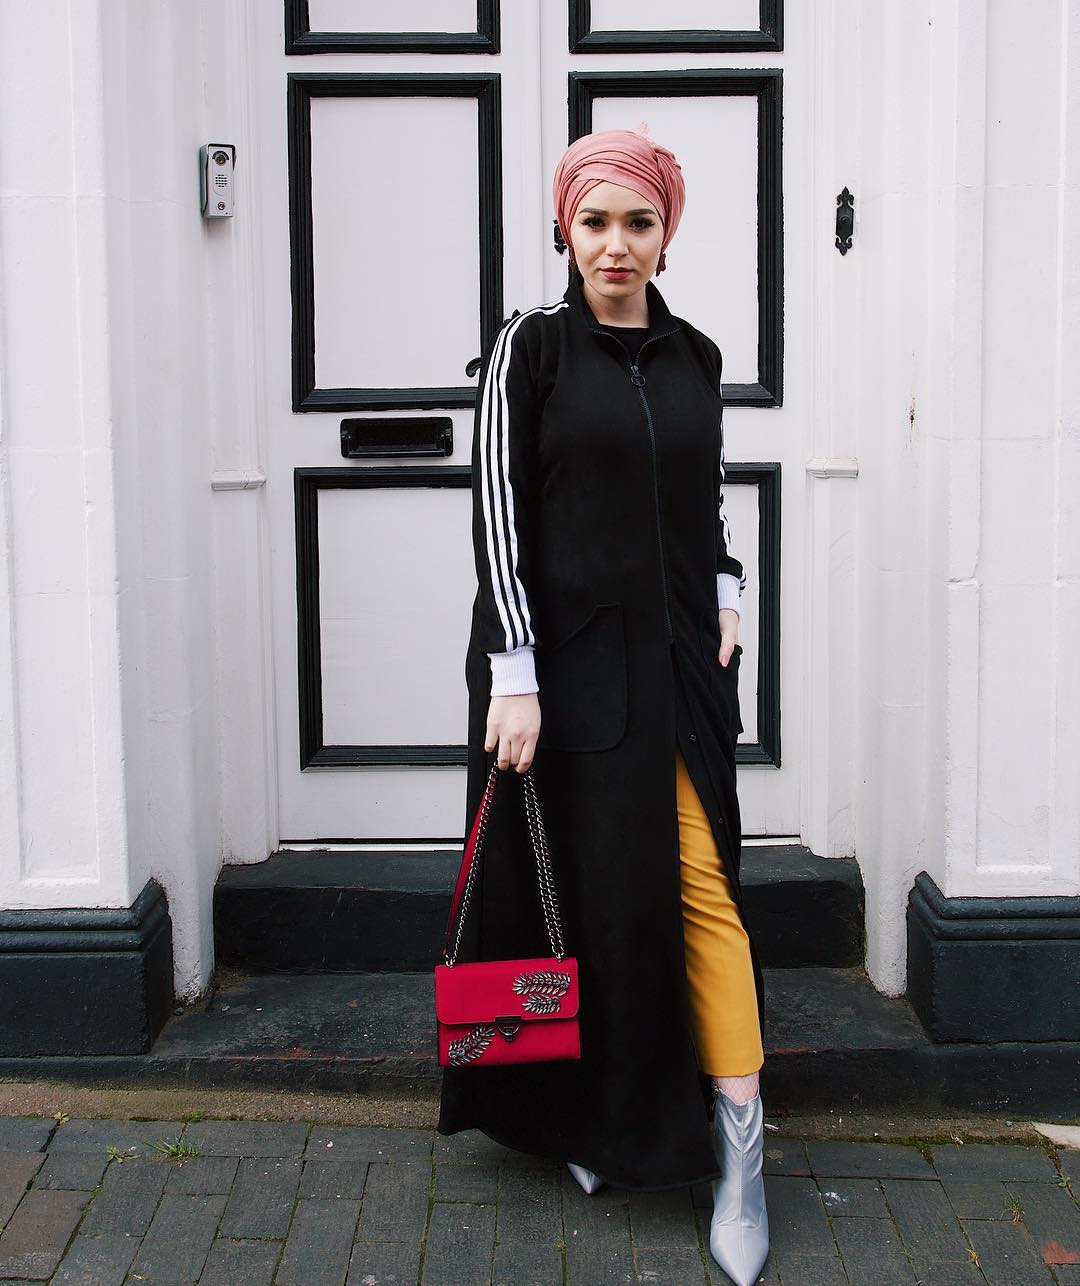 nabiila-bee-muslimah-fashion-modest-style-hijab-instagram-wiki-turban-photos-pictures